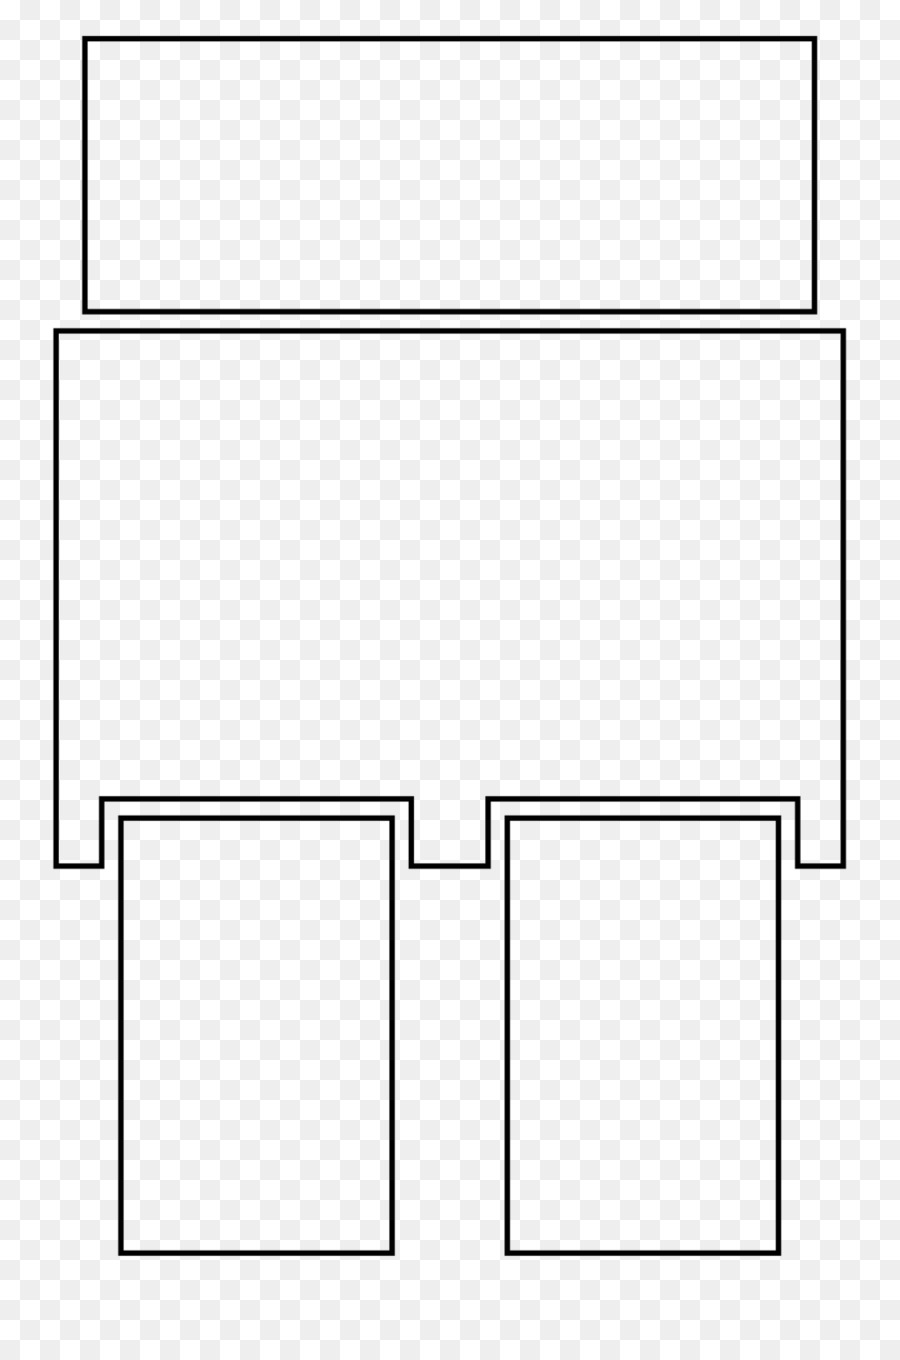 Paper Drawing Furniture White Book Template Box Png Download